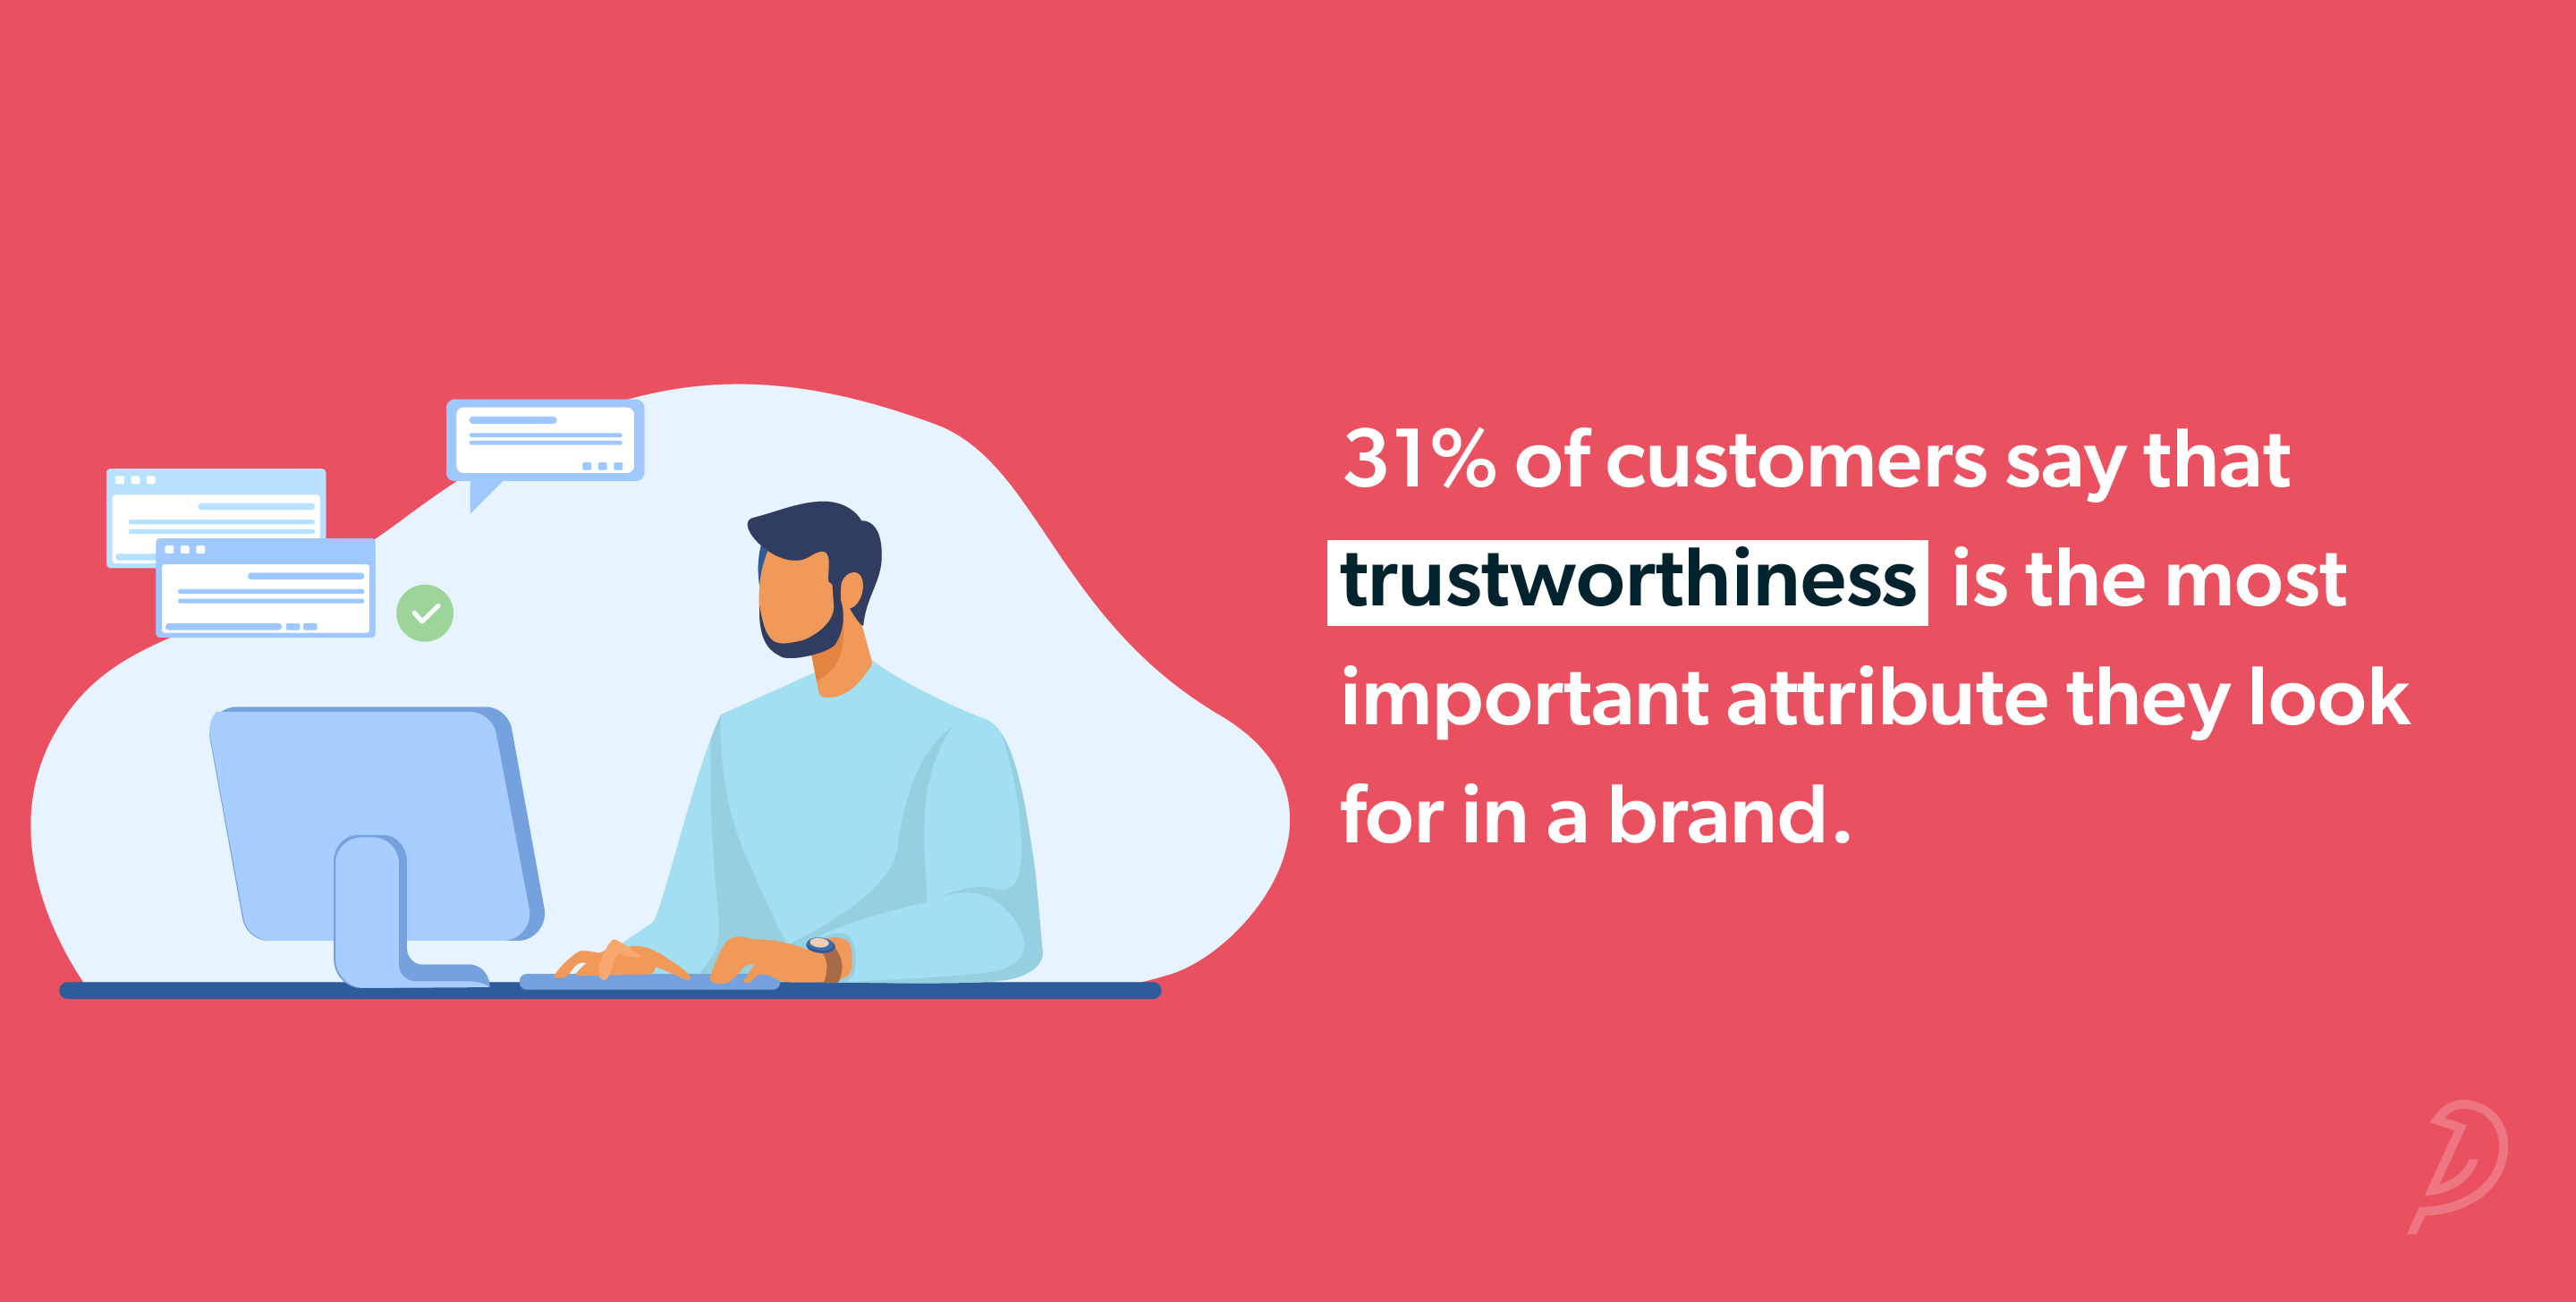 31% of customers say that trustworthiness is the most important attribute they look for in a brand.